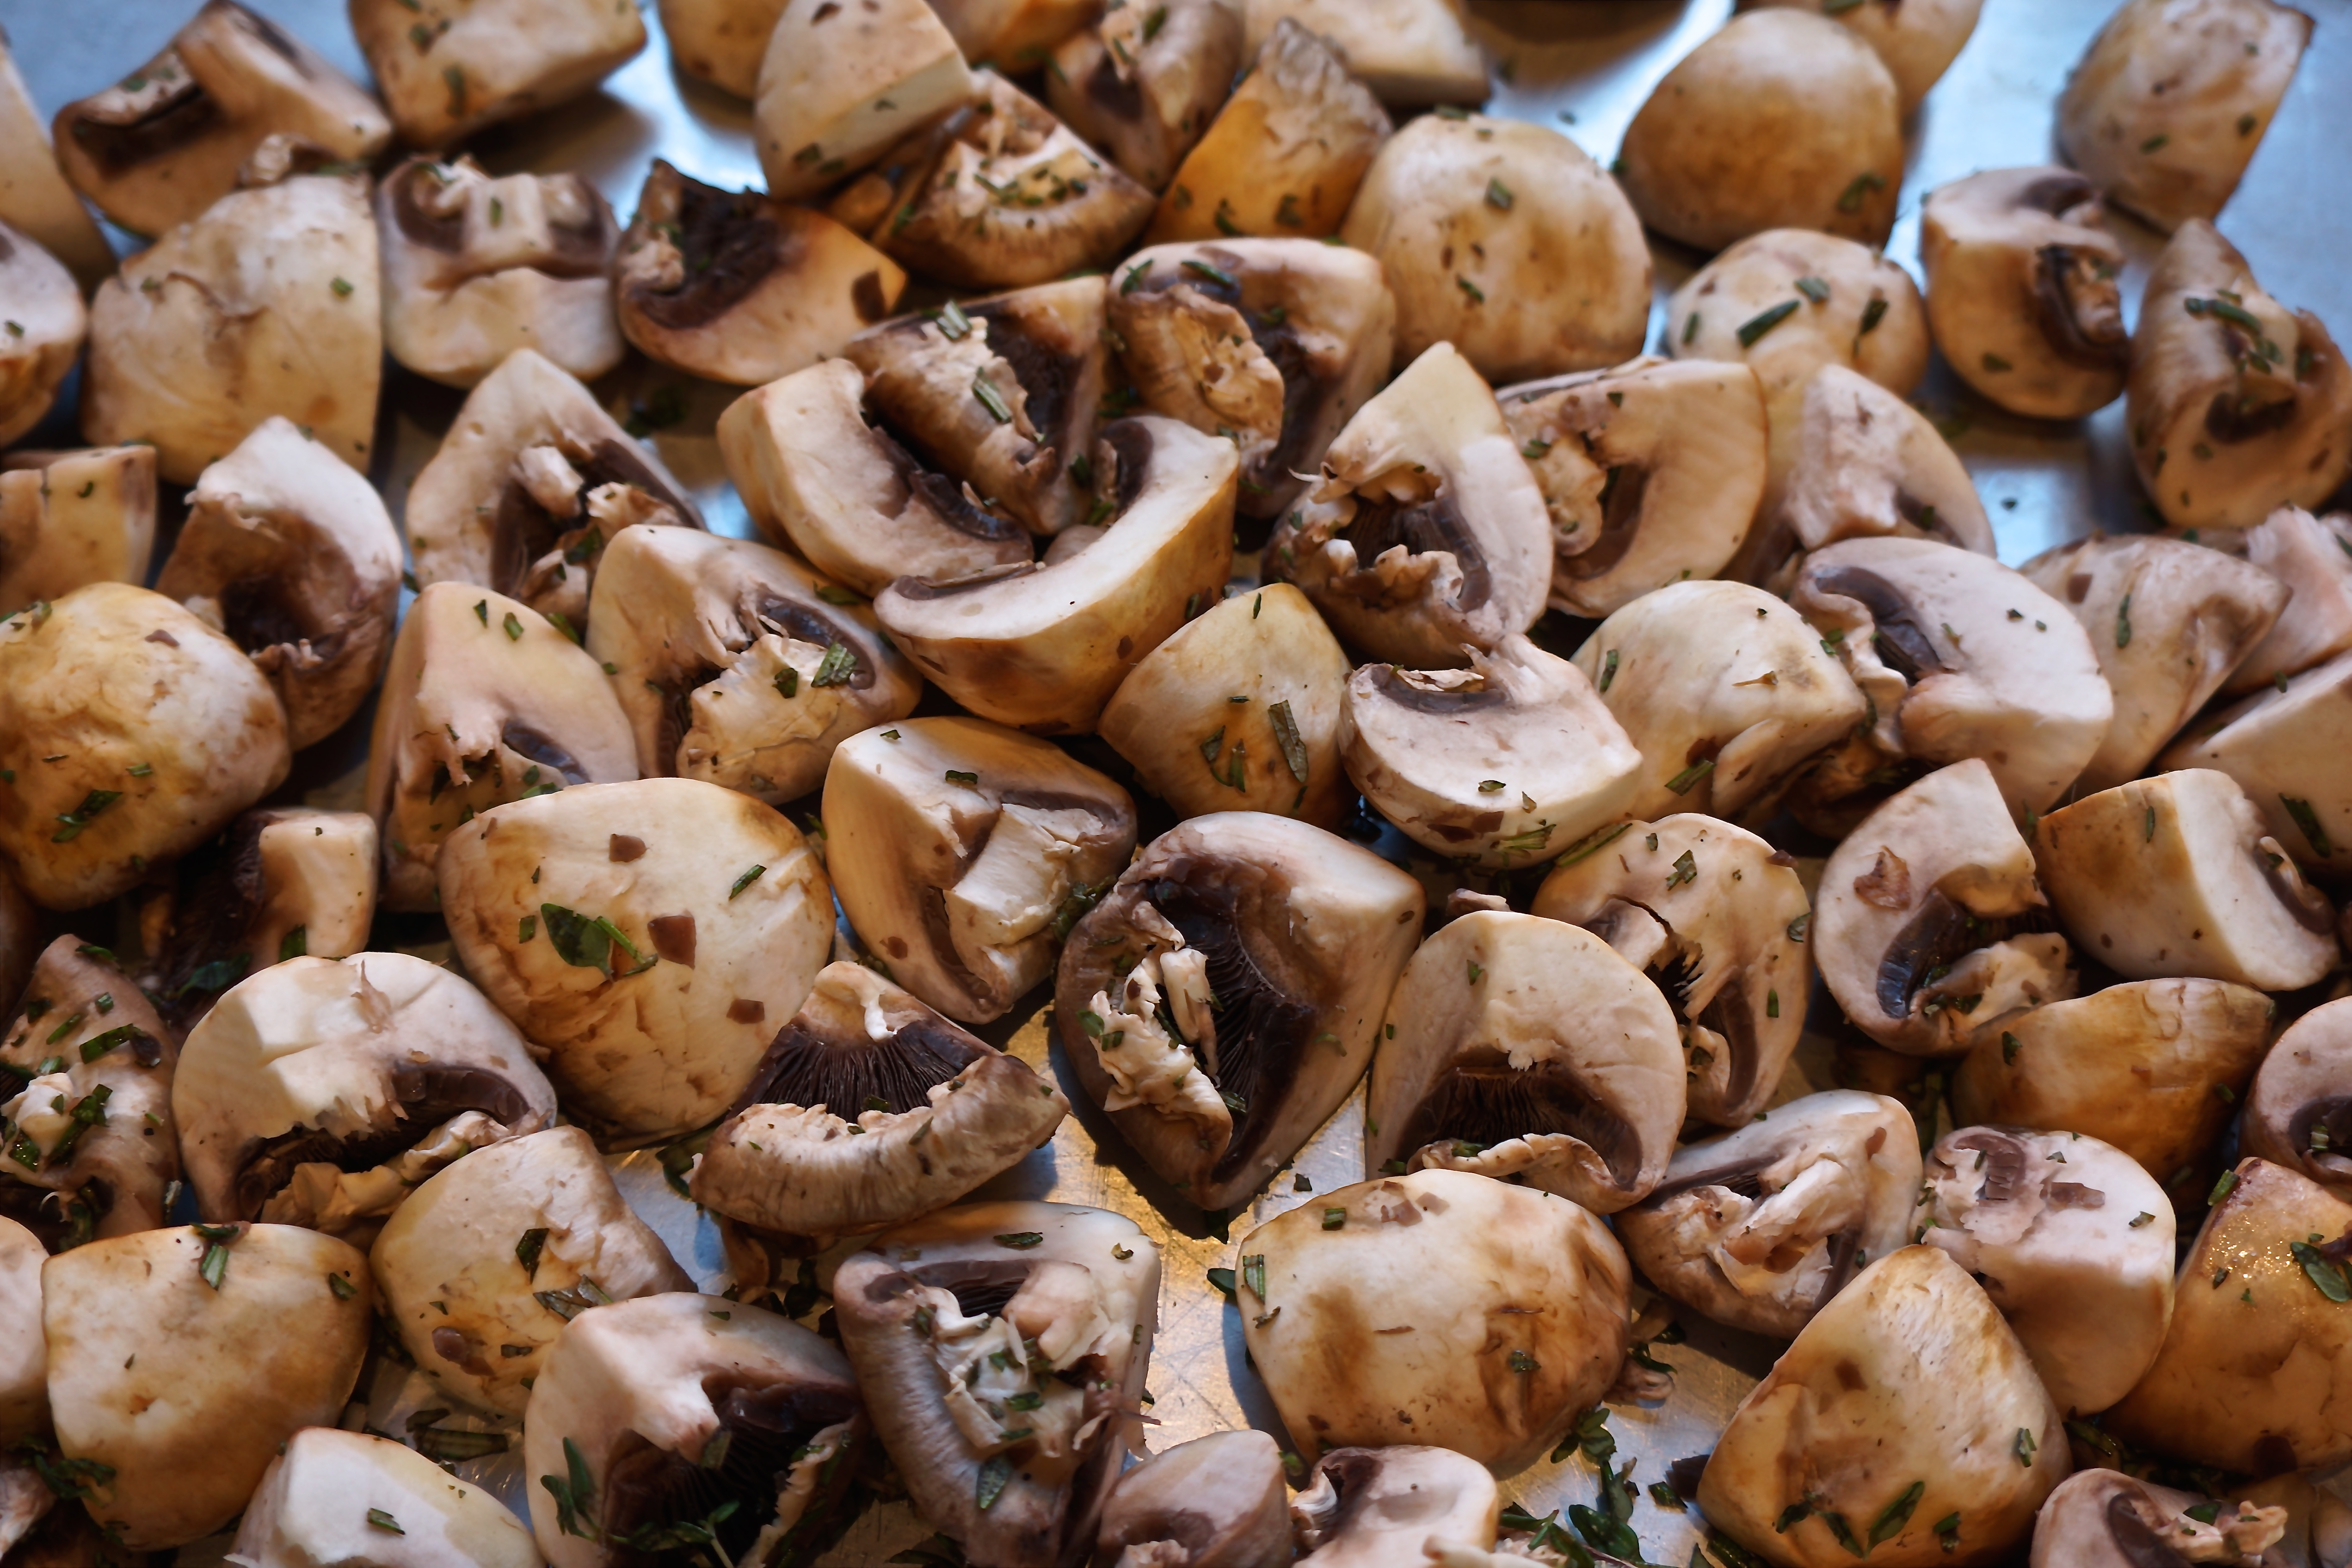 Cut the mushrooms into halves or quarters, depending on the size of the mushrooms.